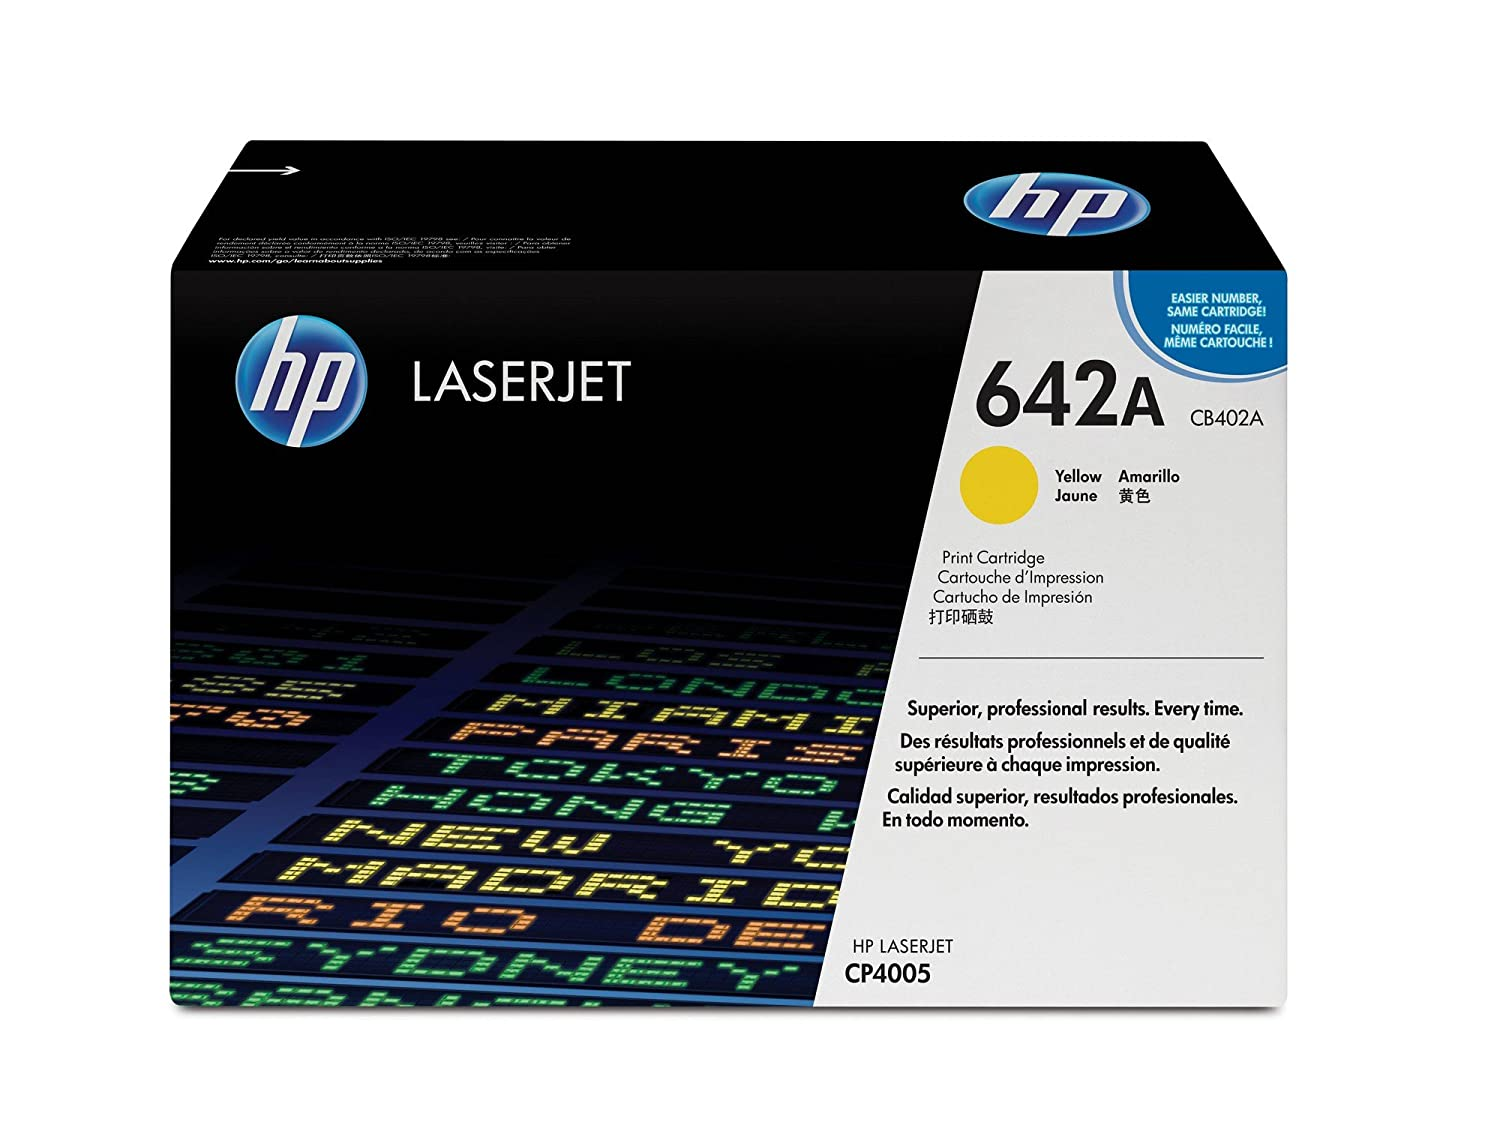 HP 642A (CB402A) LaserJet Yellow Toner Cartri..